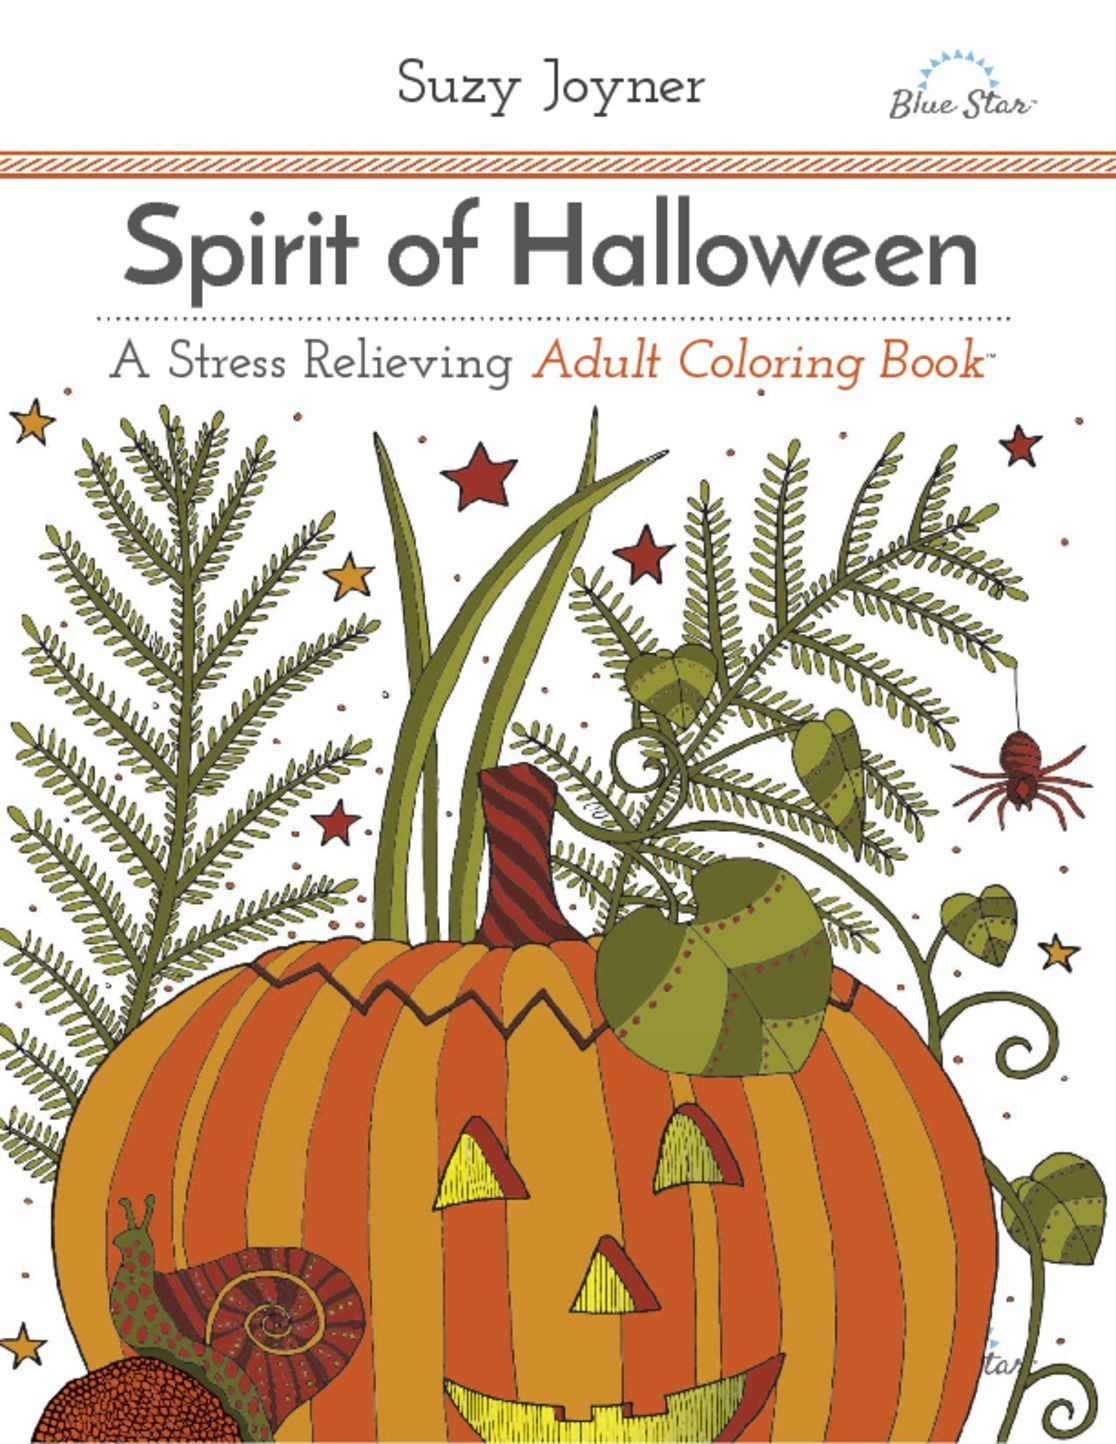 Spirit of Halloween A Stress Relieving Adult Coloring Book Digital